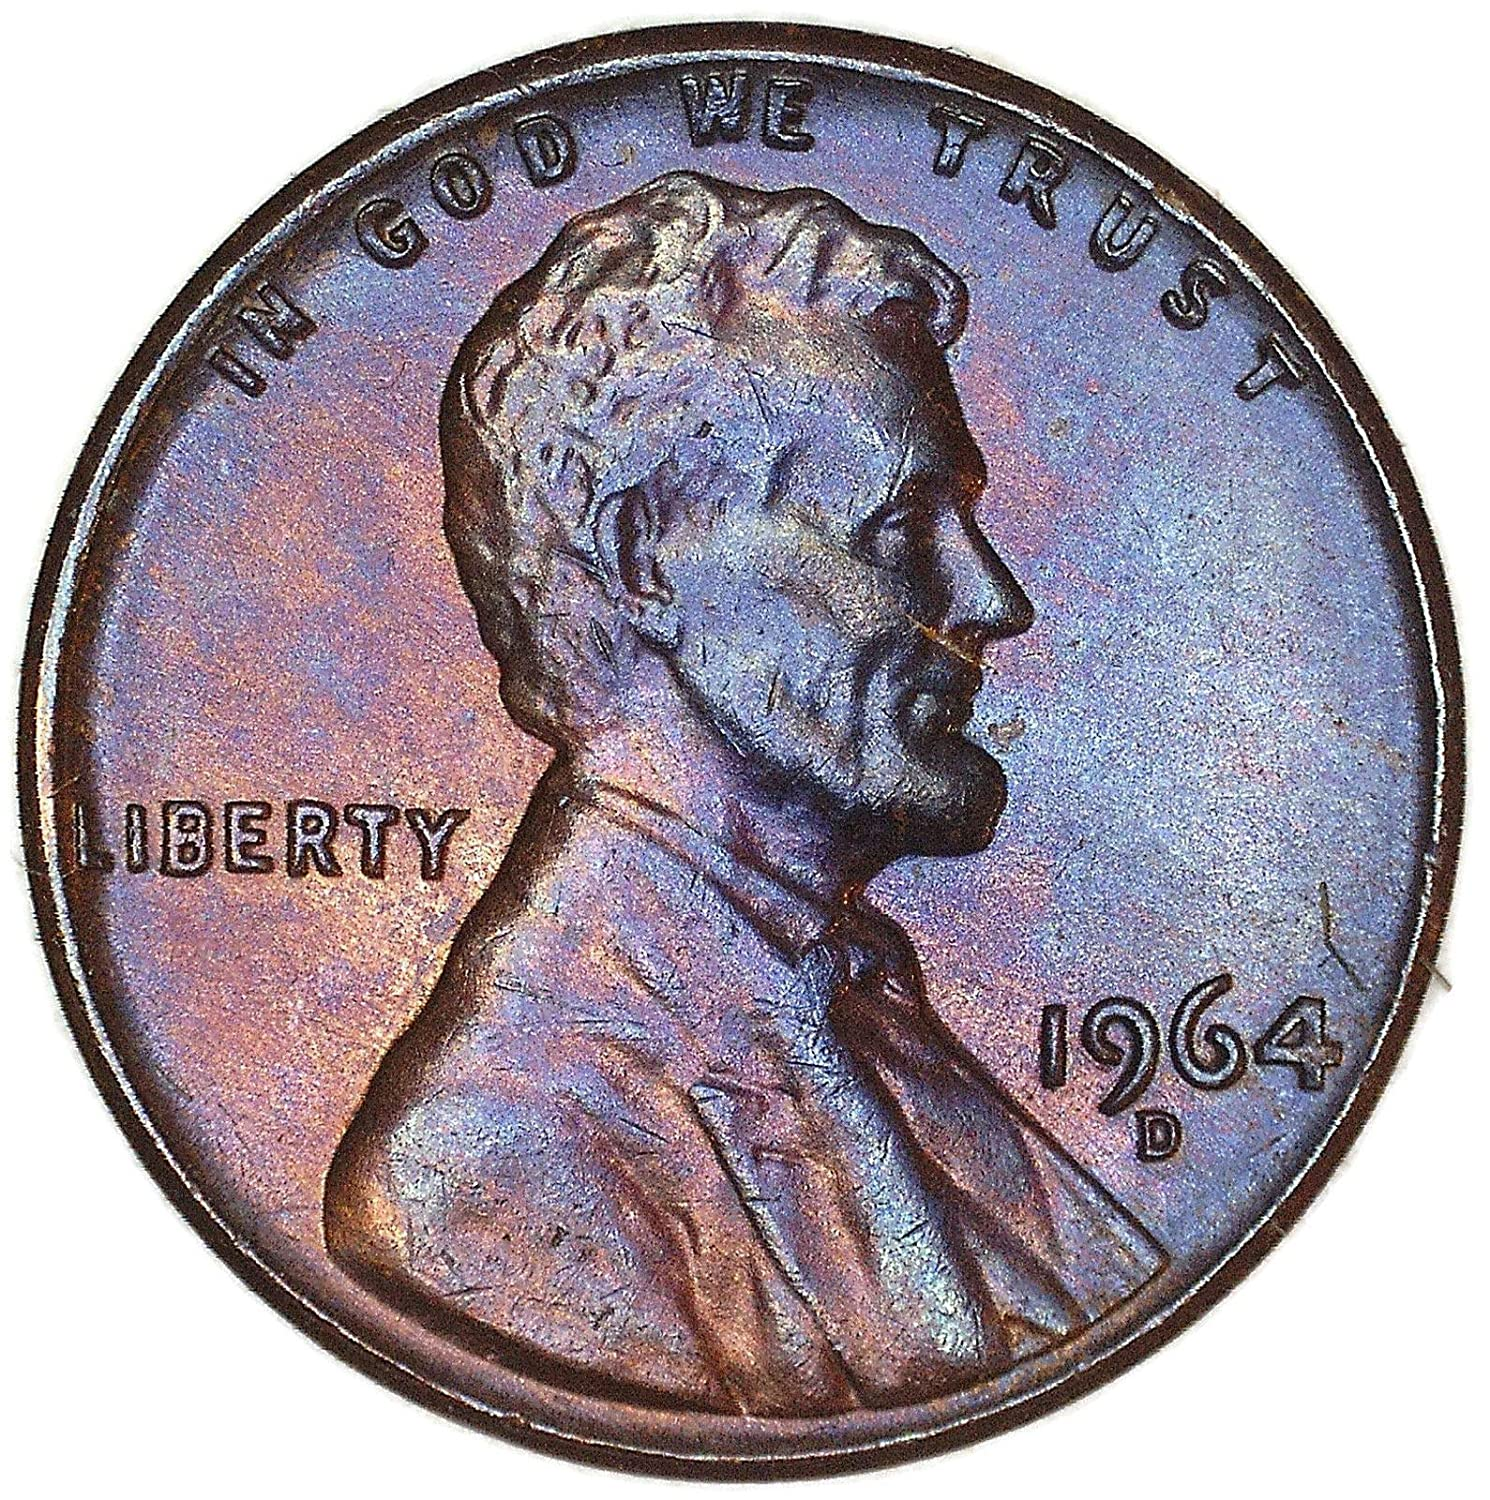 1964 D Lincoln Memorial Cent